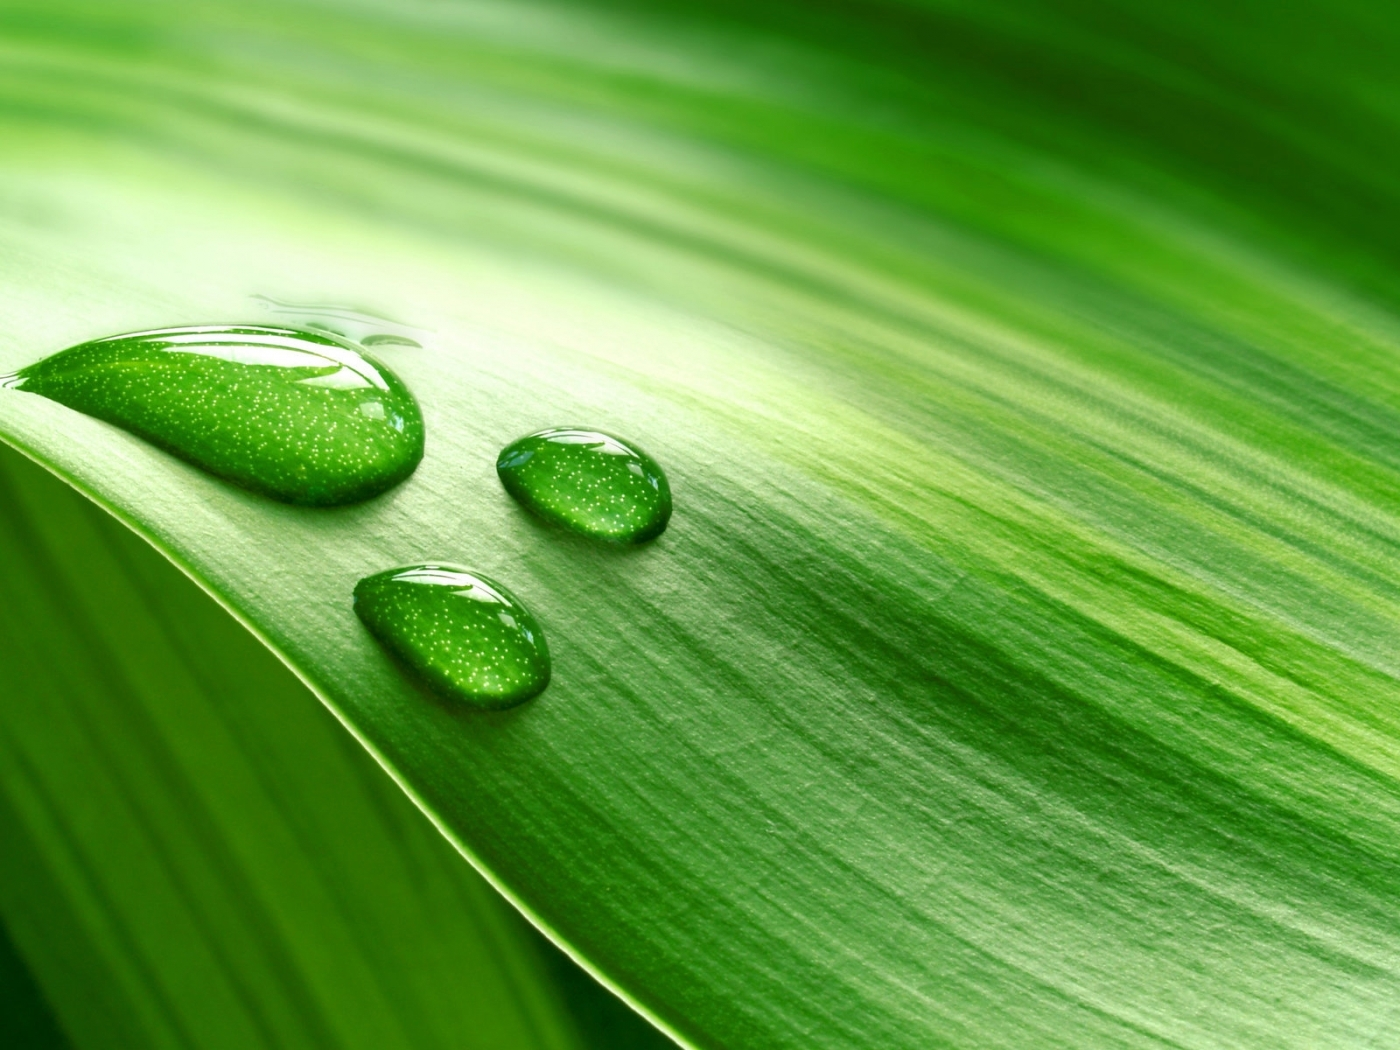 29412 download wallpaper Background, Leaves, Drops screensavers and pictures for free